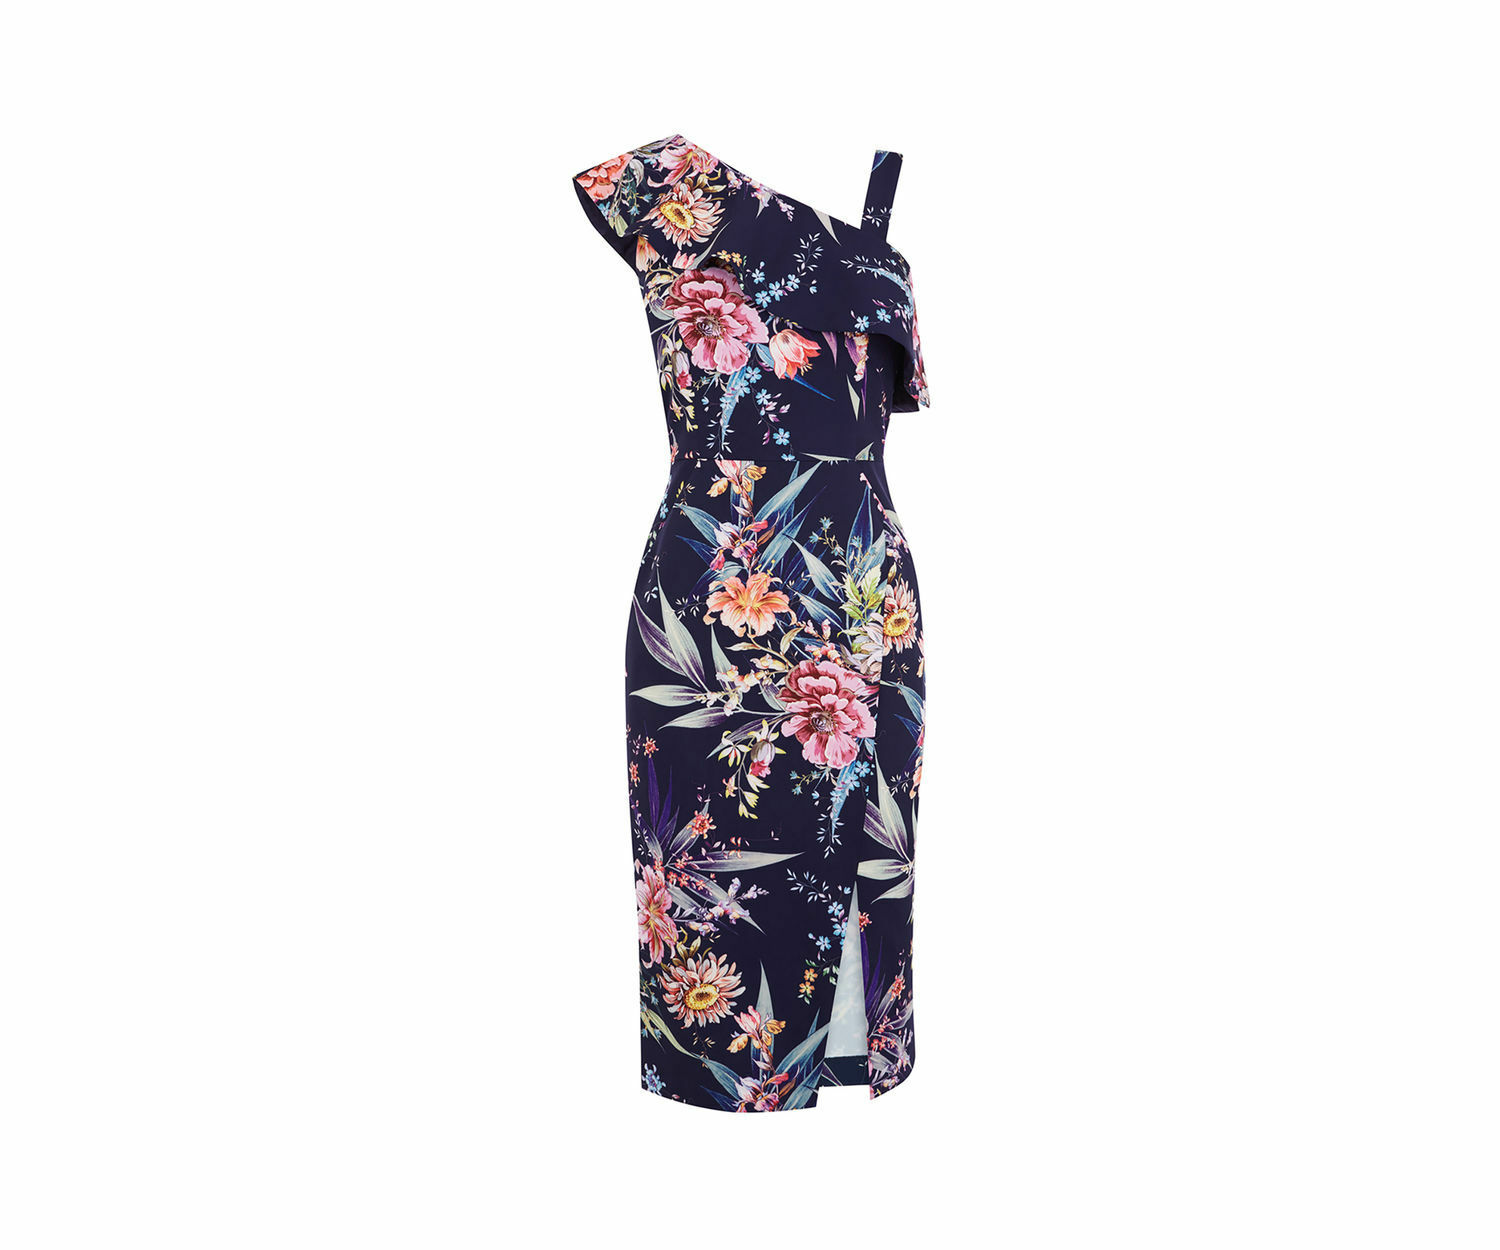 OASIS PENCIL DRESS blueE blueE blueE Tropical Floral 1 Shoulder PINK 1950s MIDI  Sz 12 NEW dc3d3e